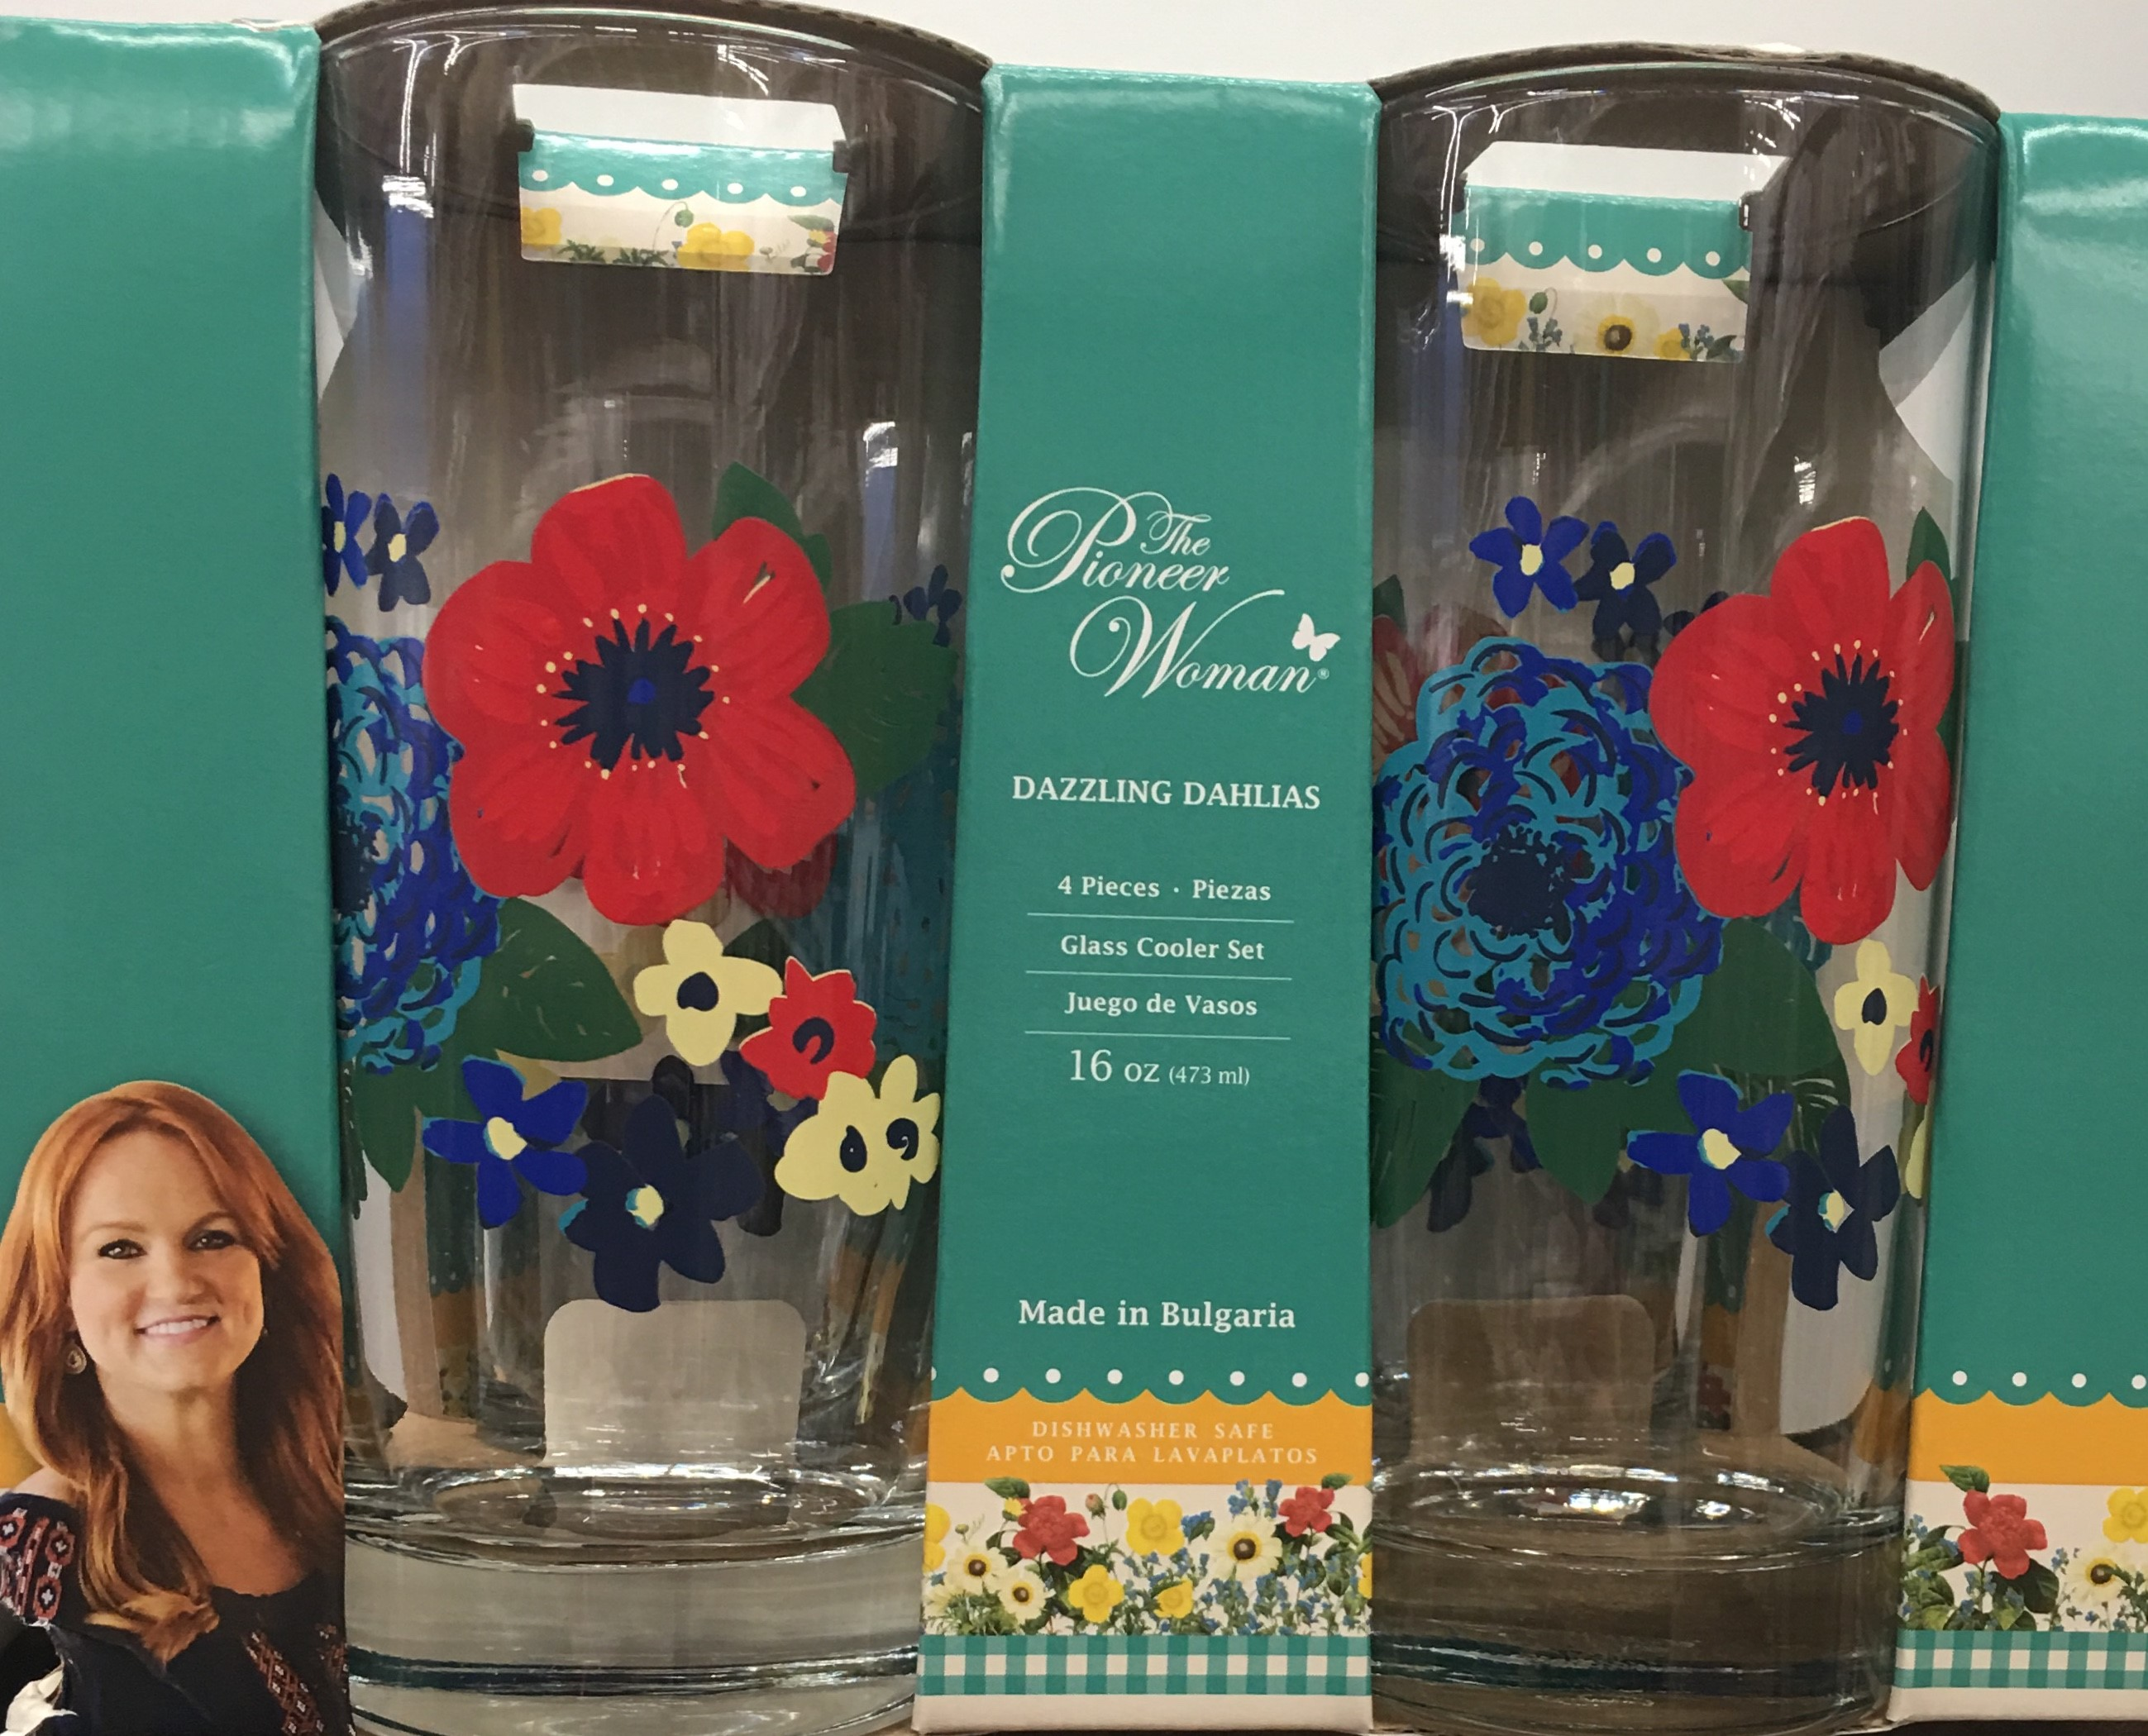 The Pioneer Woman Dazzling Dahlias Coolers, 4 Pack